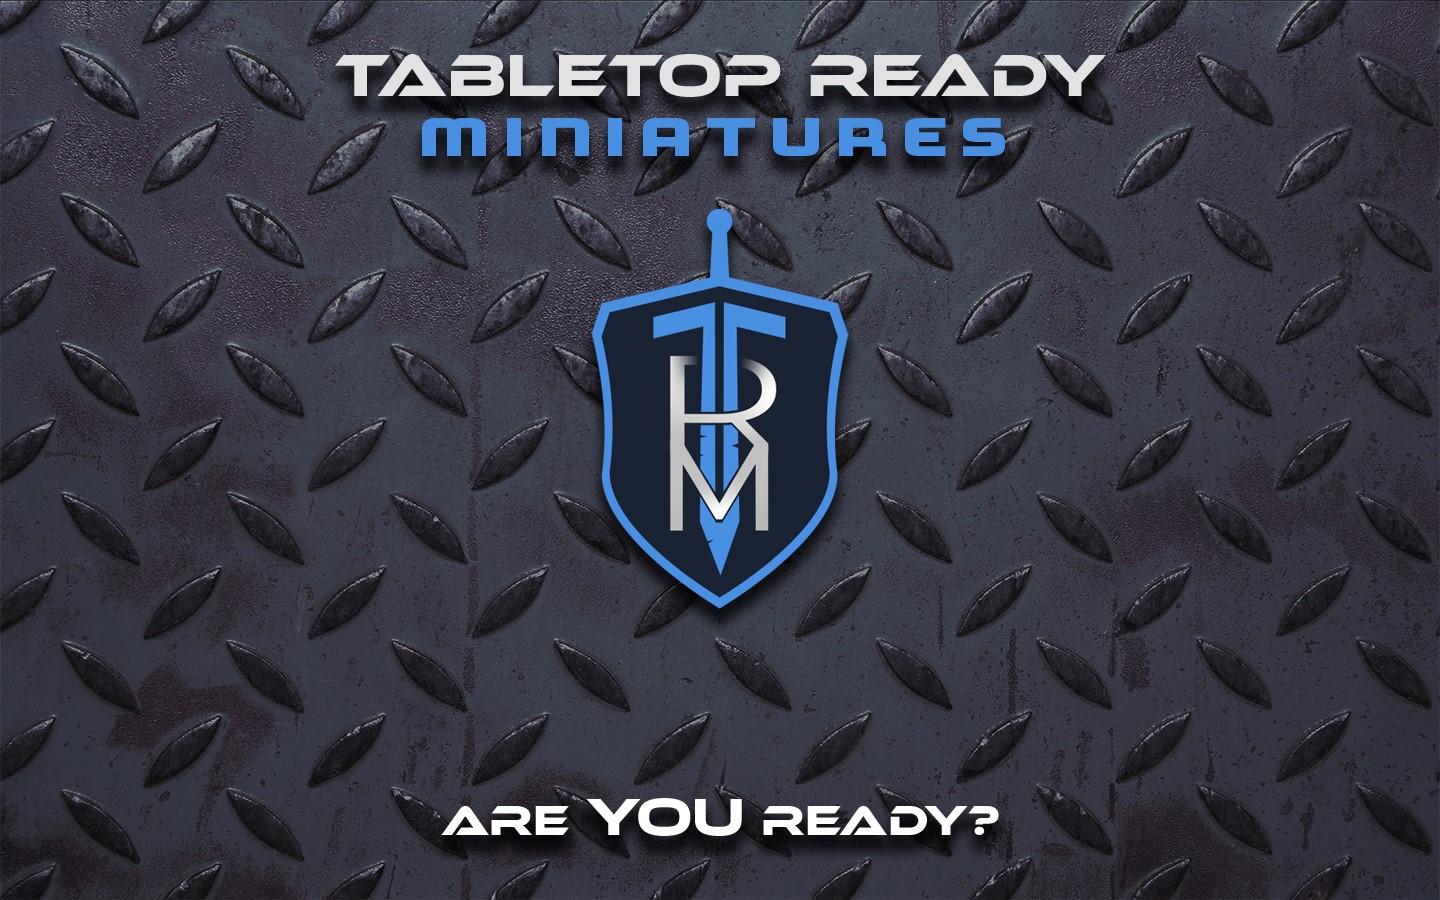 tabletop-trade-ins